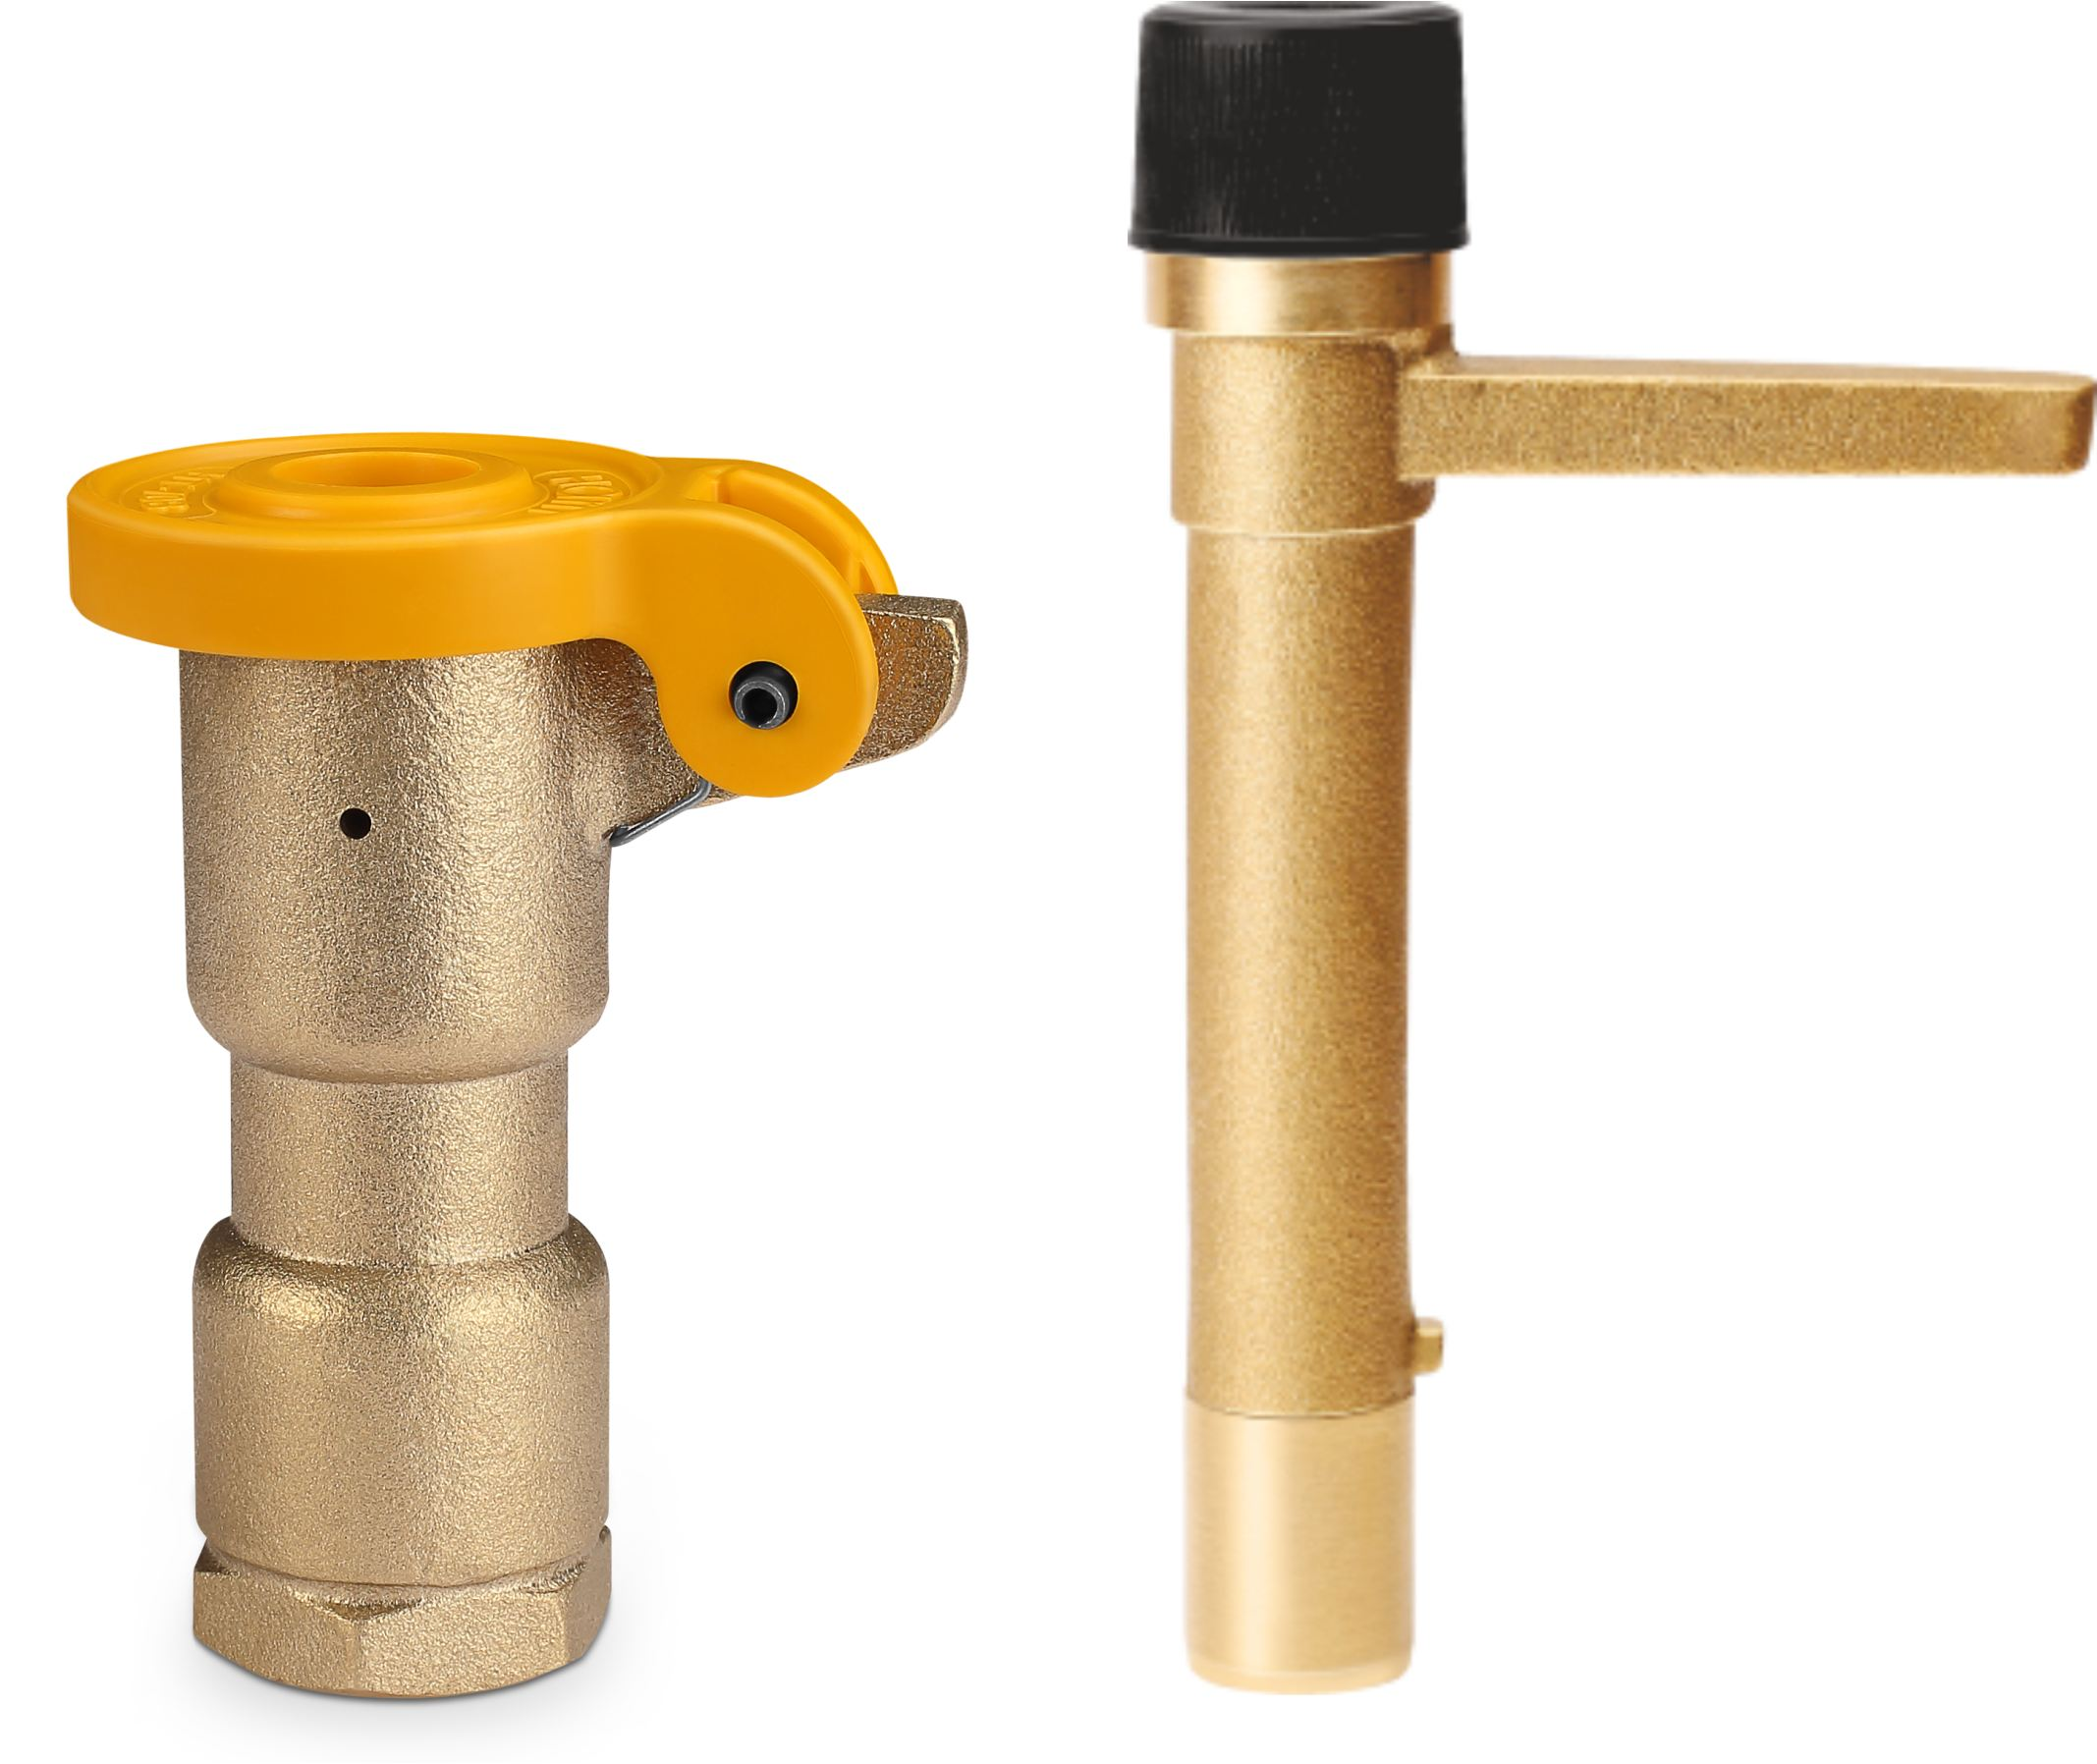 Brass Quick Coupling Valve And Key Control Valve AutomatIrrigation